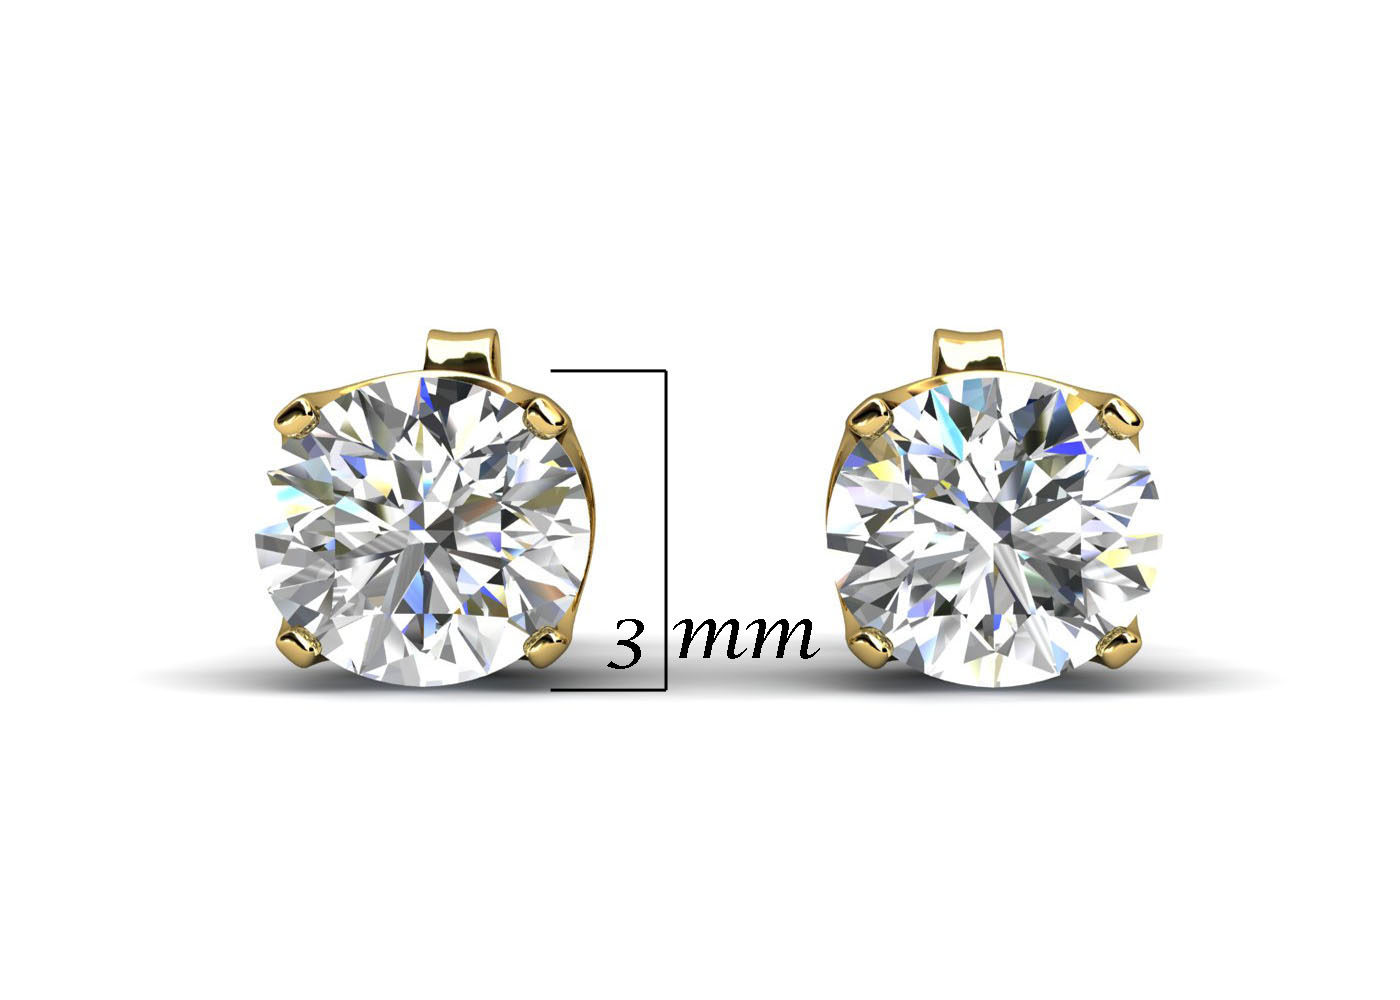 9ct Claw Set Diamond Earrings 0.40 Carats - Image 8 of 9